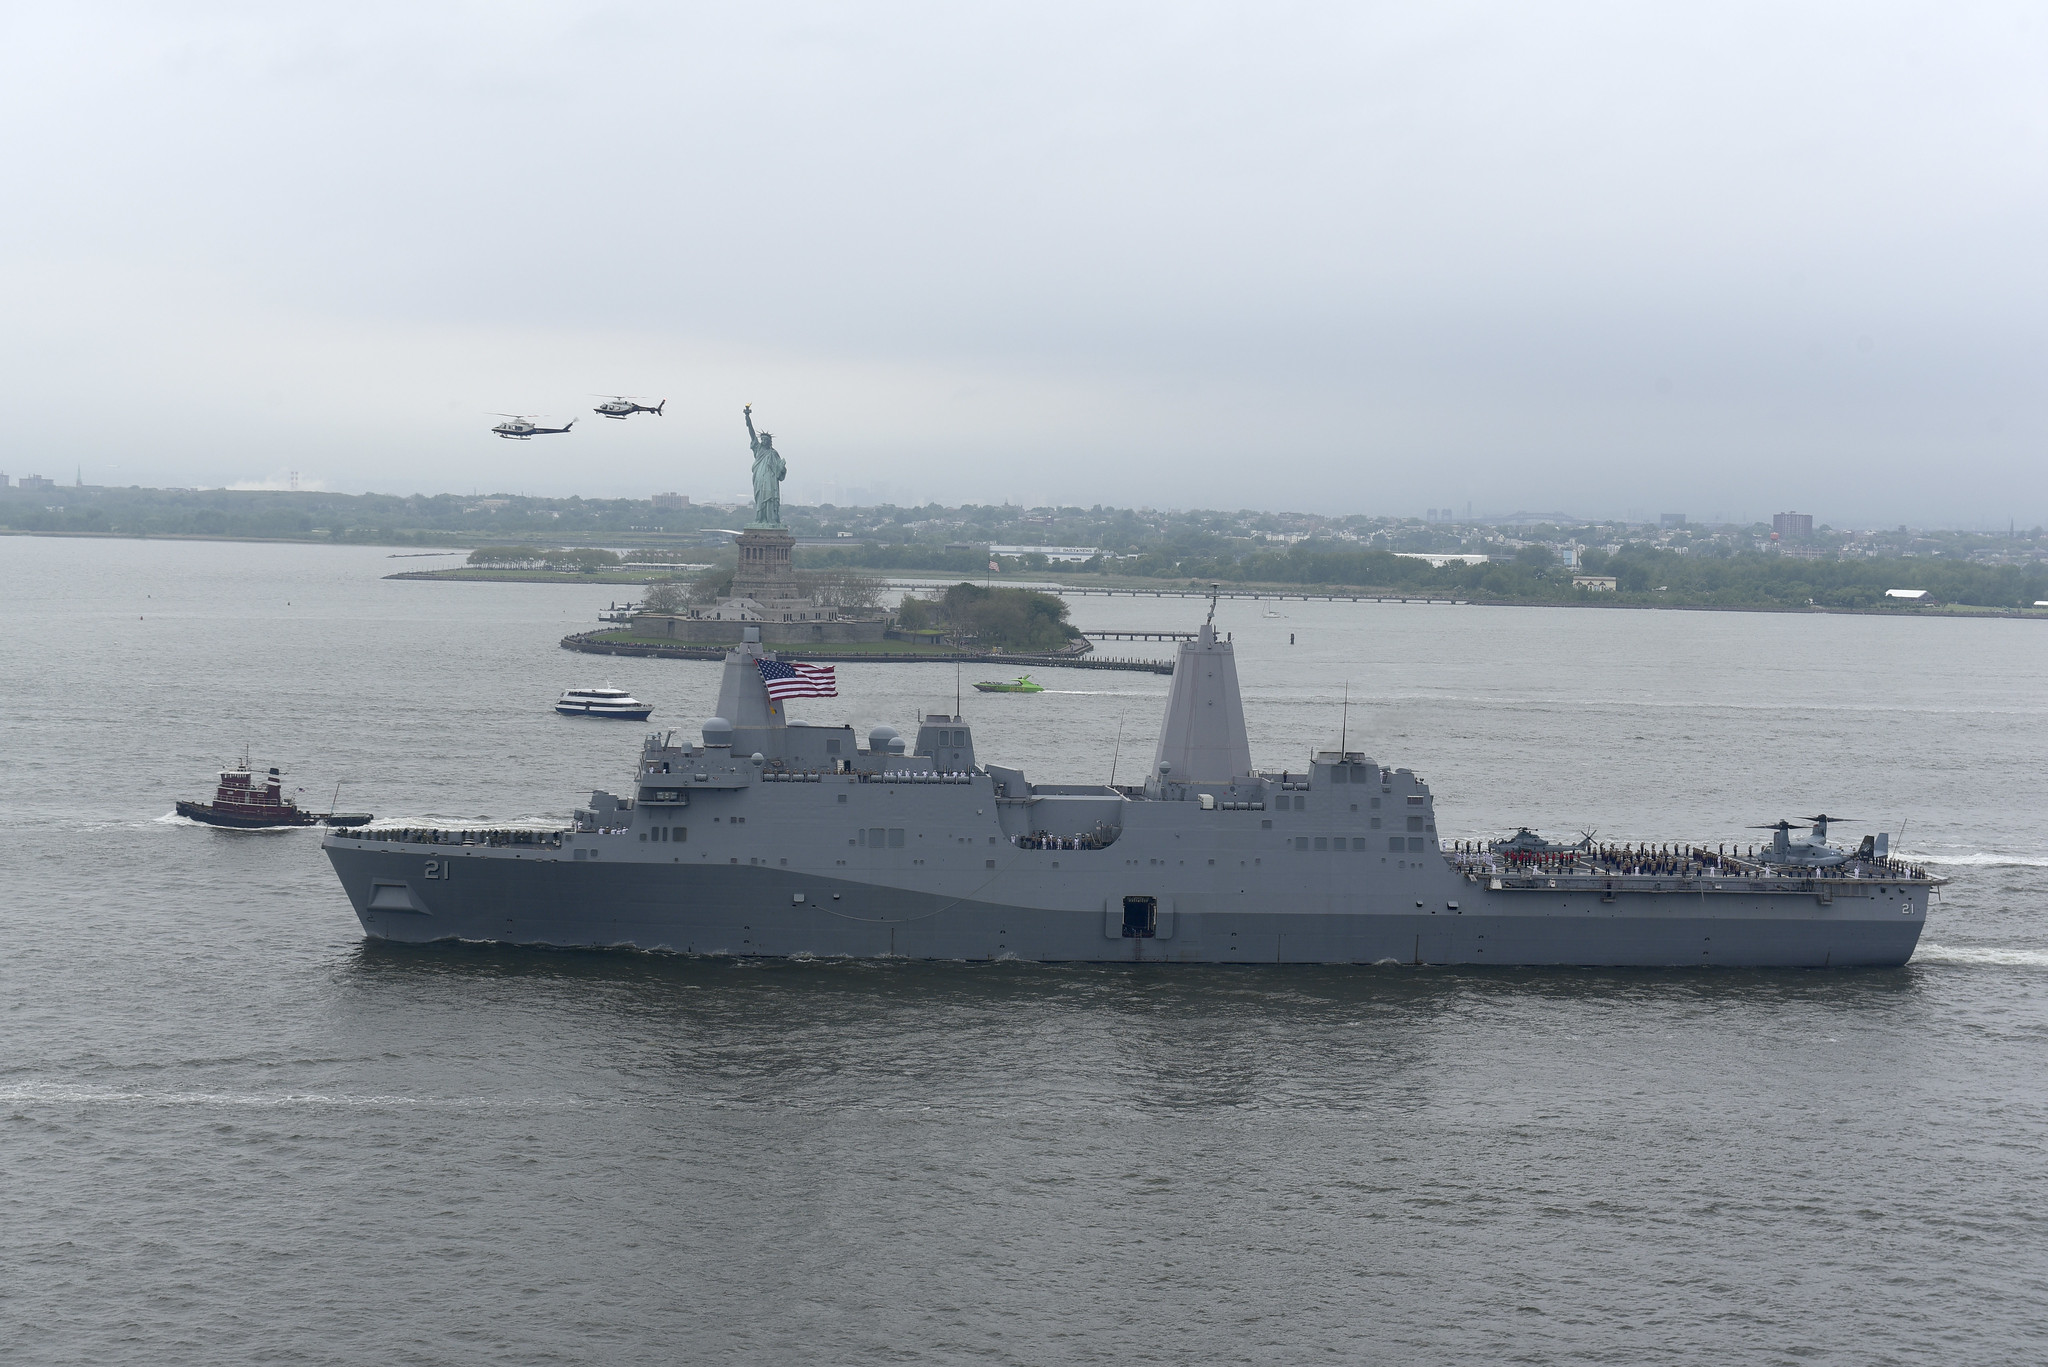 The amphibious transport dock ship USS New York (LPD 21) departs New York Harbor at the conclusion of Fleet Week New York 2019 on May 28, 2019. (Chief Mass Communication Specialist Roger S. Duncan/Navy)